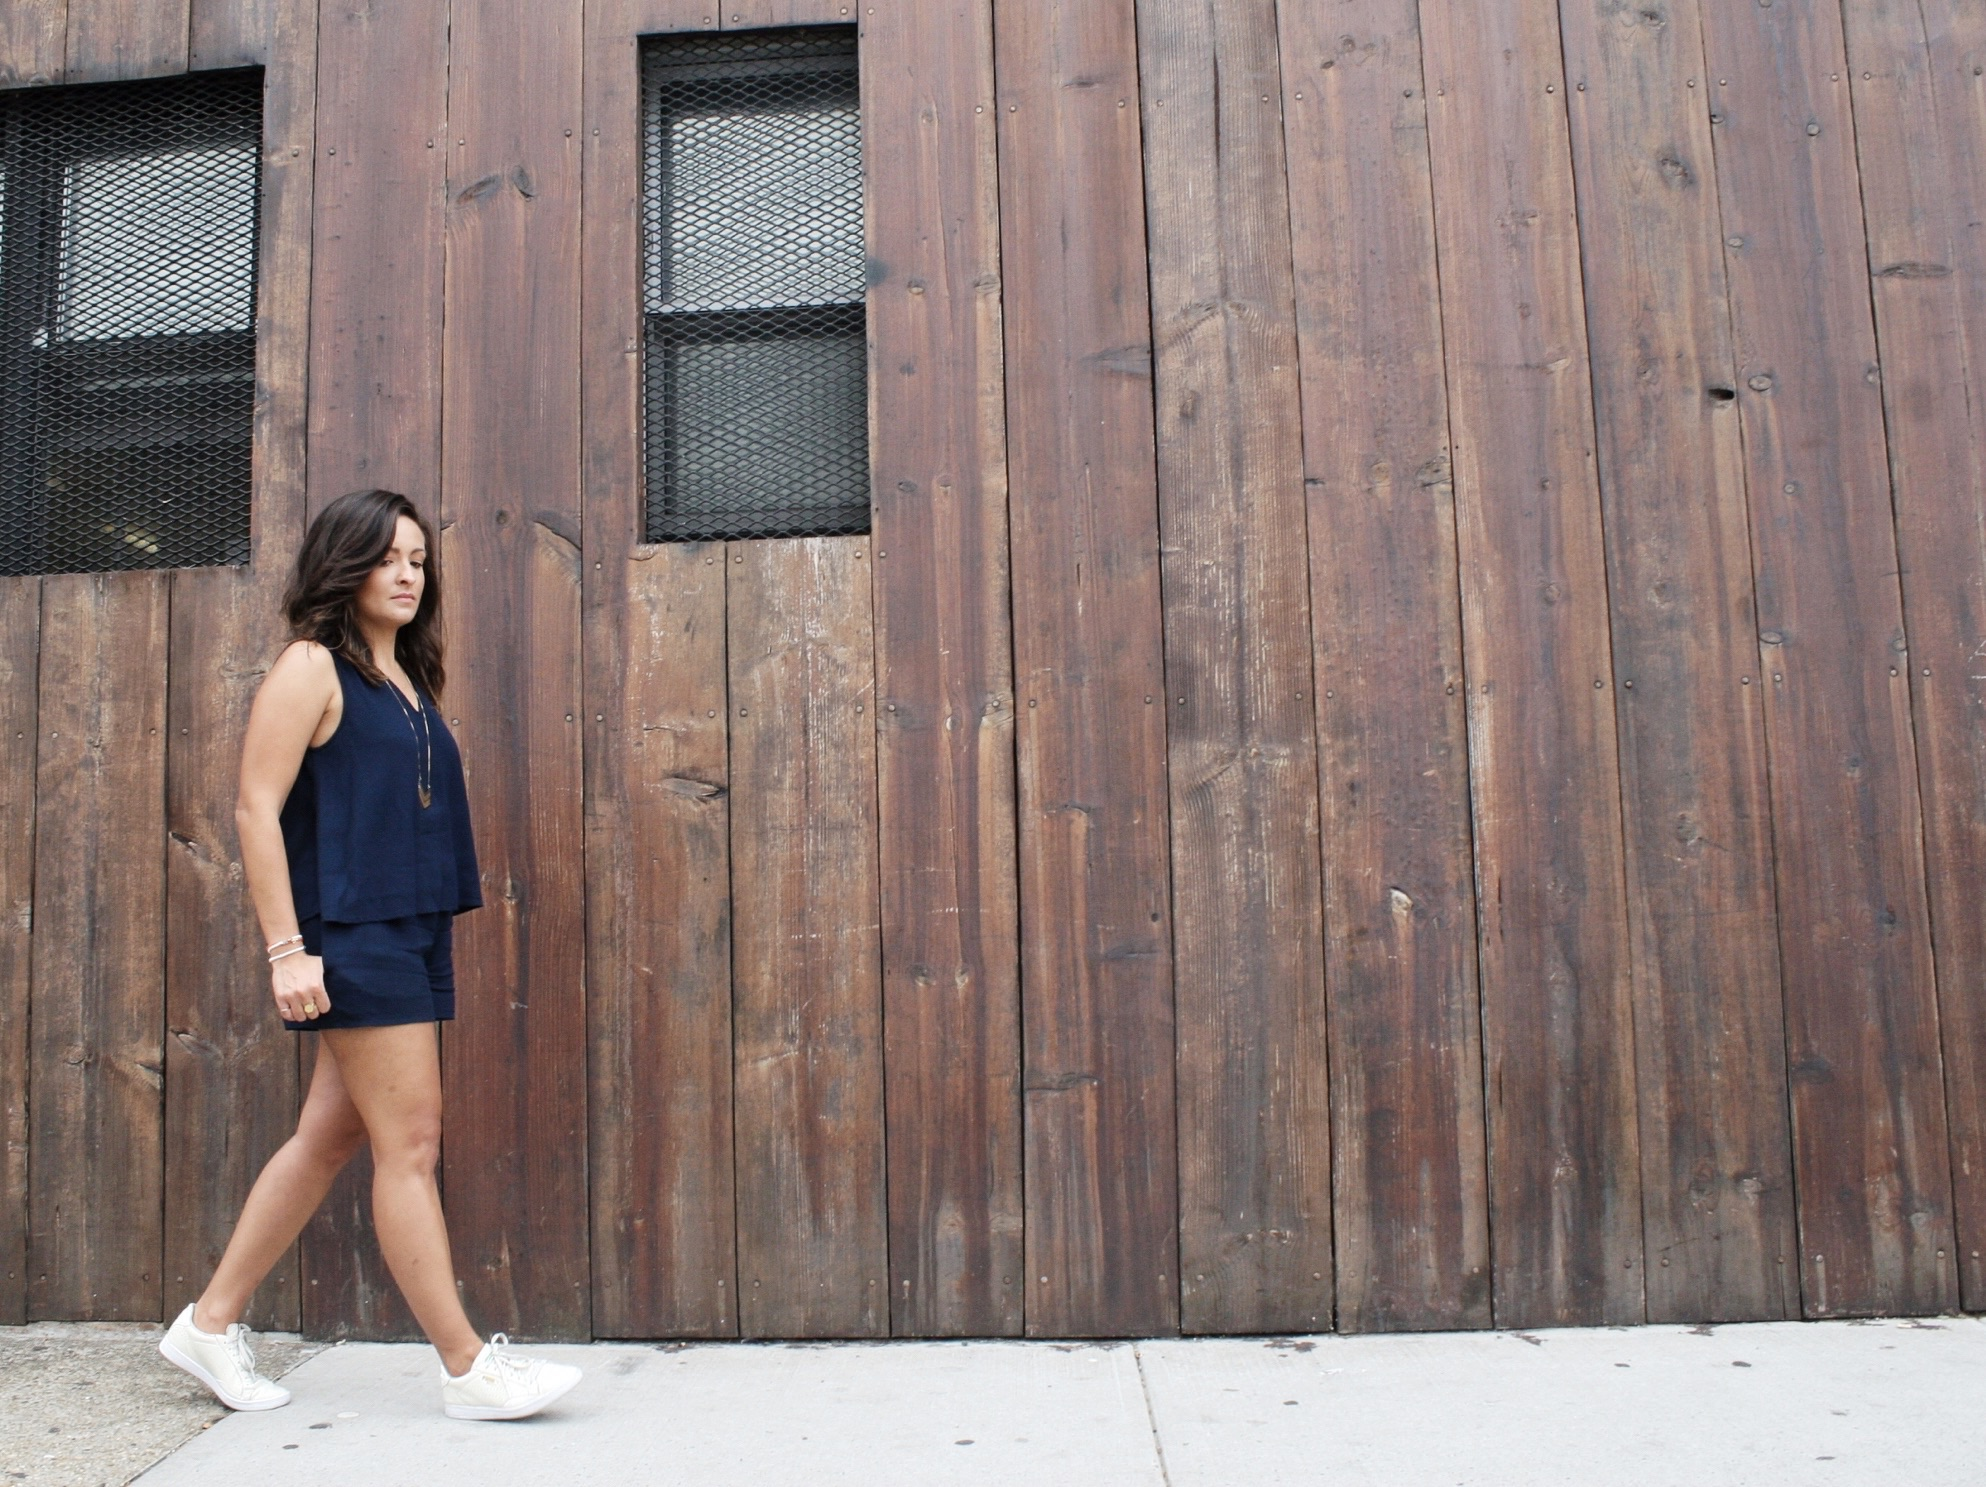 style, fashion blogger, style blogger, personal style, fashion, madewell, everyday madewell, romper, summer style, summer trends, navy romper, navy, puma, white sneakers, minimalist,